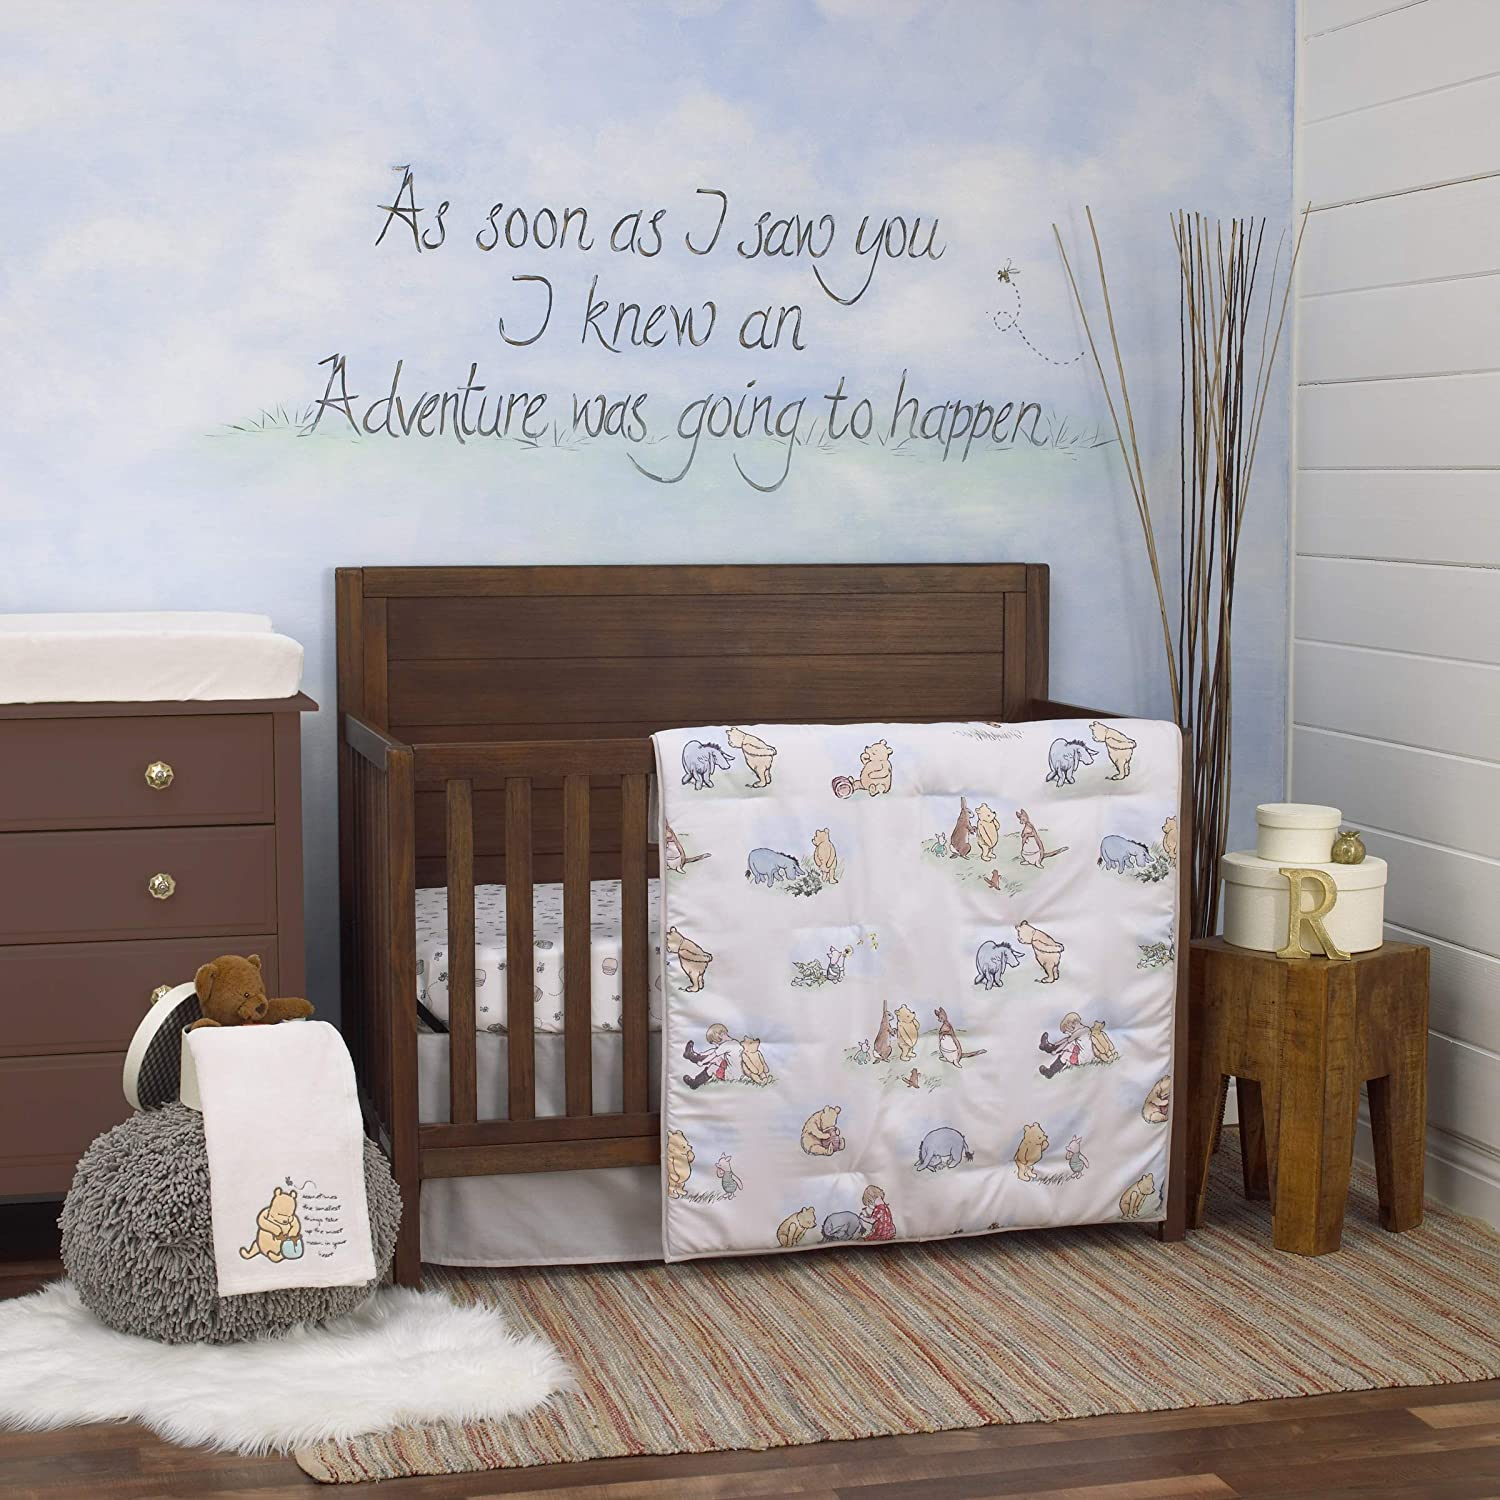 Disney Lion King Wild About You Traditional Baby Crib Bumper Simba Paw Prints